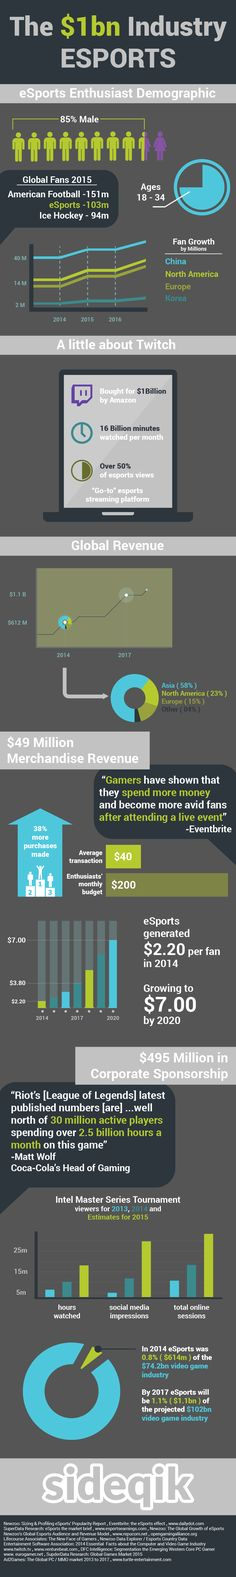 (Infographic) eSports is The new multi-billion dollar industry! If ever you feel guilty about gaming, take a look at this! Competition Games, E Sport, Information Graphics, Data Visualization, Public Relations, Fun Games, Internet Marketing, Life Lessons, Digital Marketing